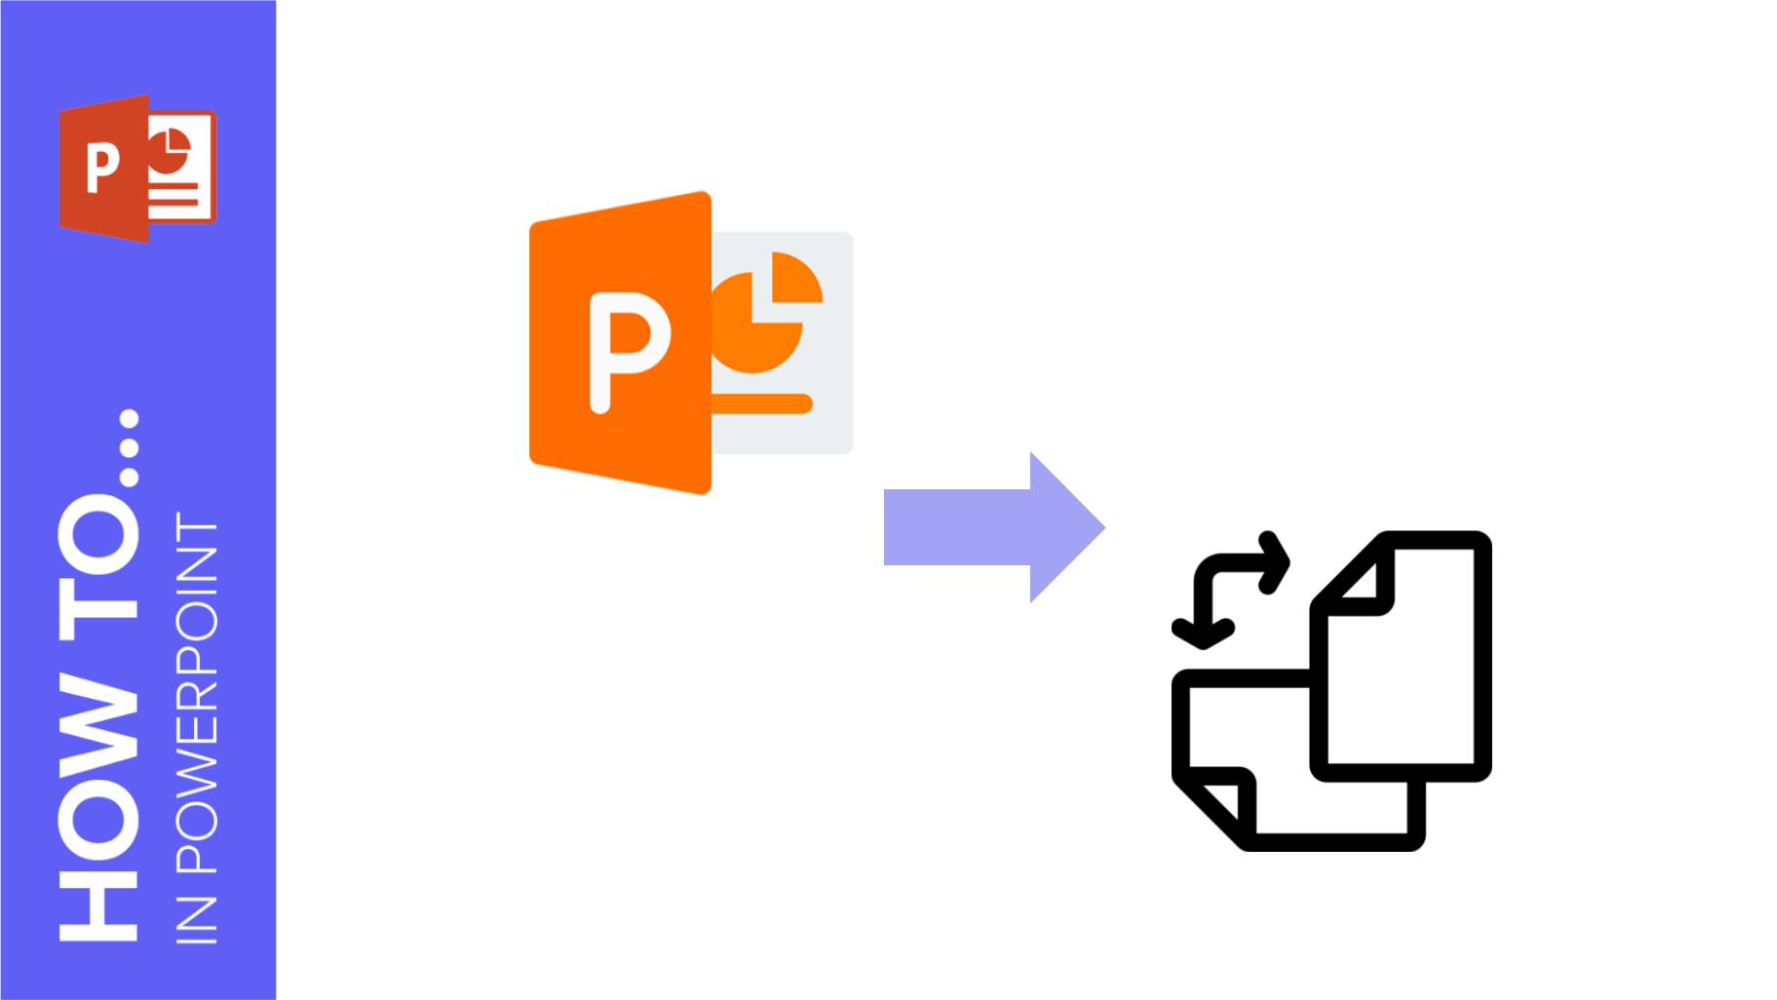 how-to-change-orientation-in-powerpoint-1632146565.jpeg